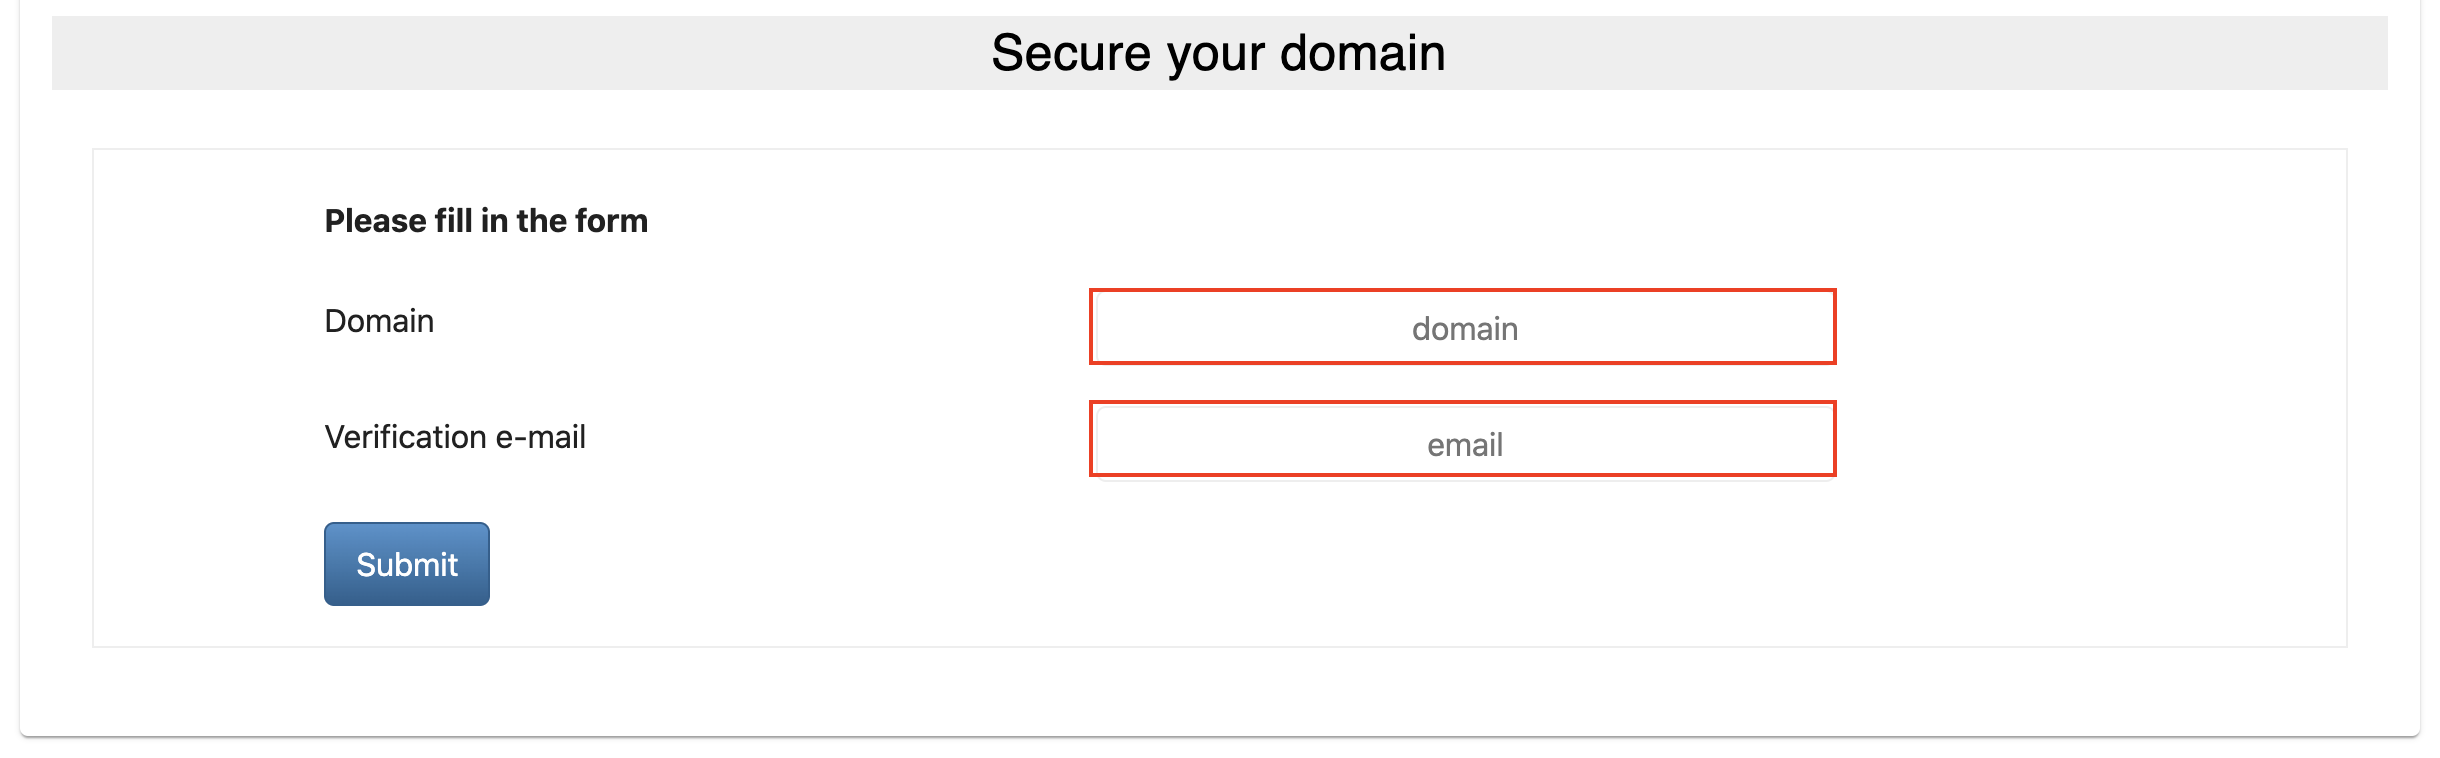 aws infrastructure manager secure domain